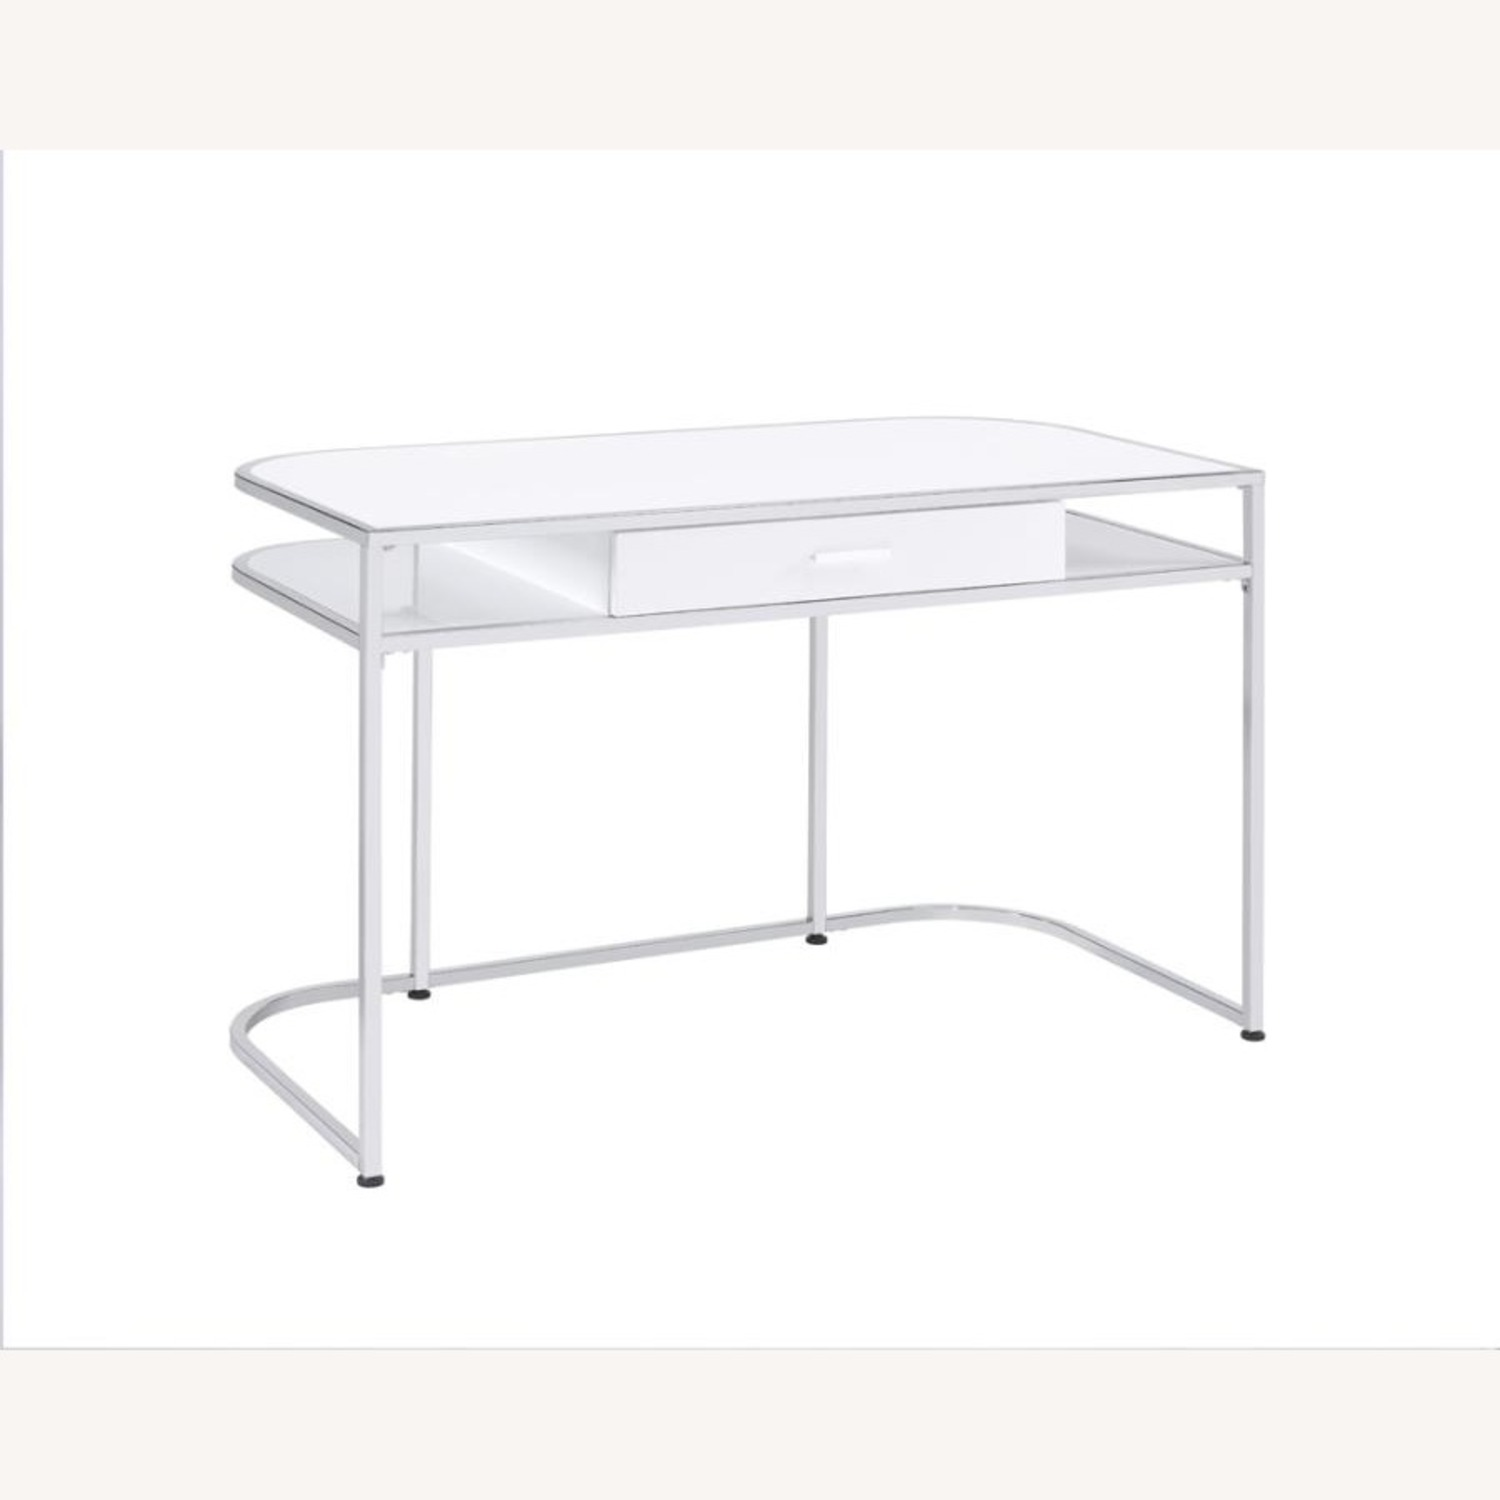 Writing Desk In White High Gloss Lacquer Finish - image-0